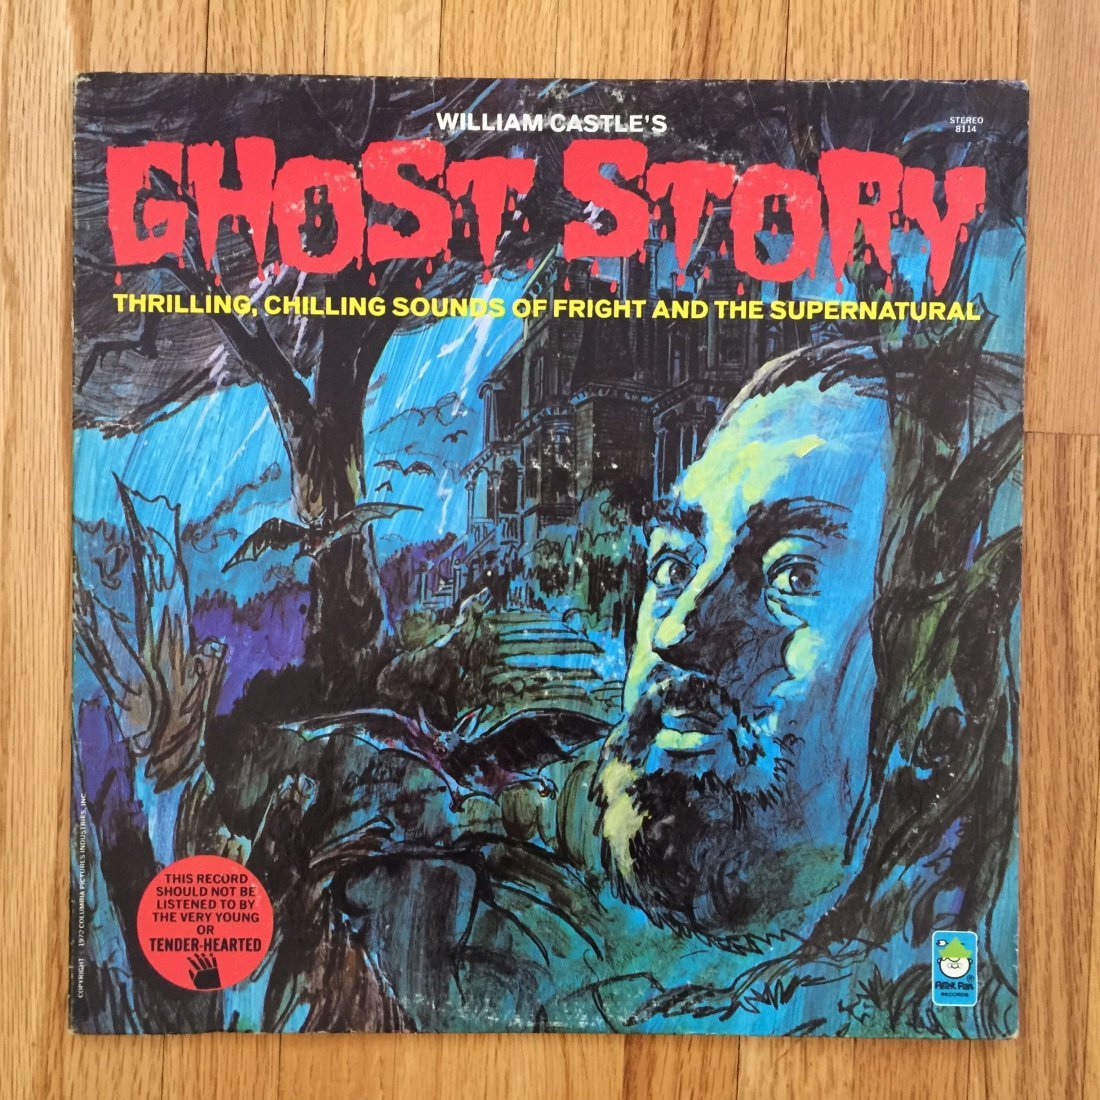 GHOST STORY 33LP RECORD